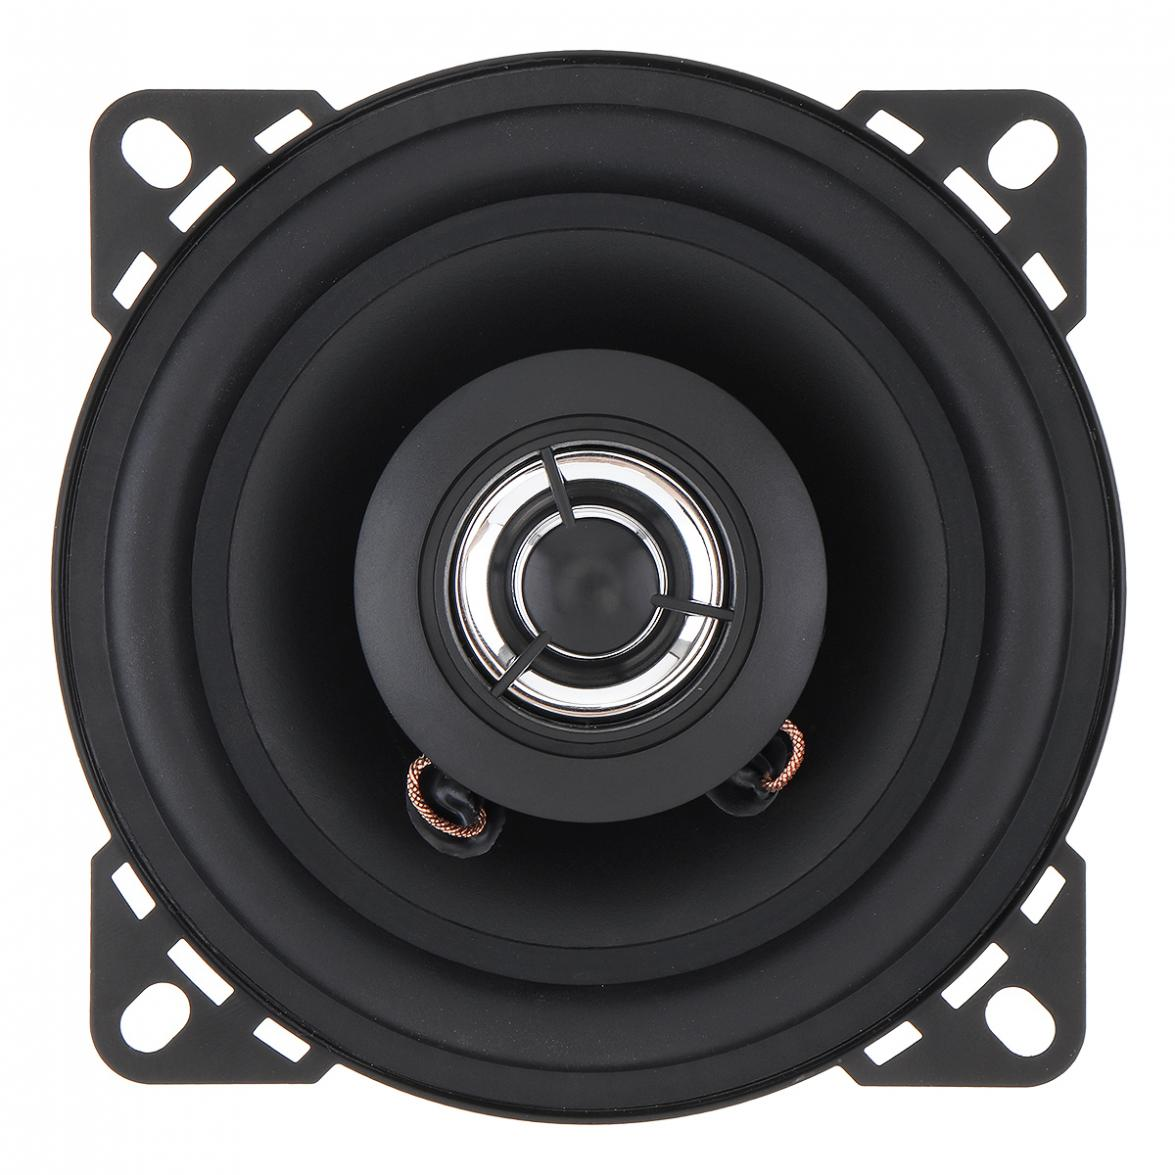 1pcs 12V 4 Inch 10mm <font><b>50W</b></font> 2-Way Car HiFi Coaxial <font><b>Speaker</b></font> Vehicle Door Auto Audio Music Stereo Full Range Frequency <font><b>Speakers</b></font> image